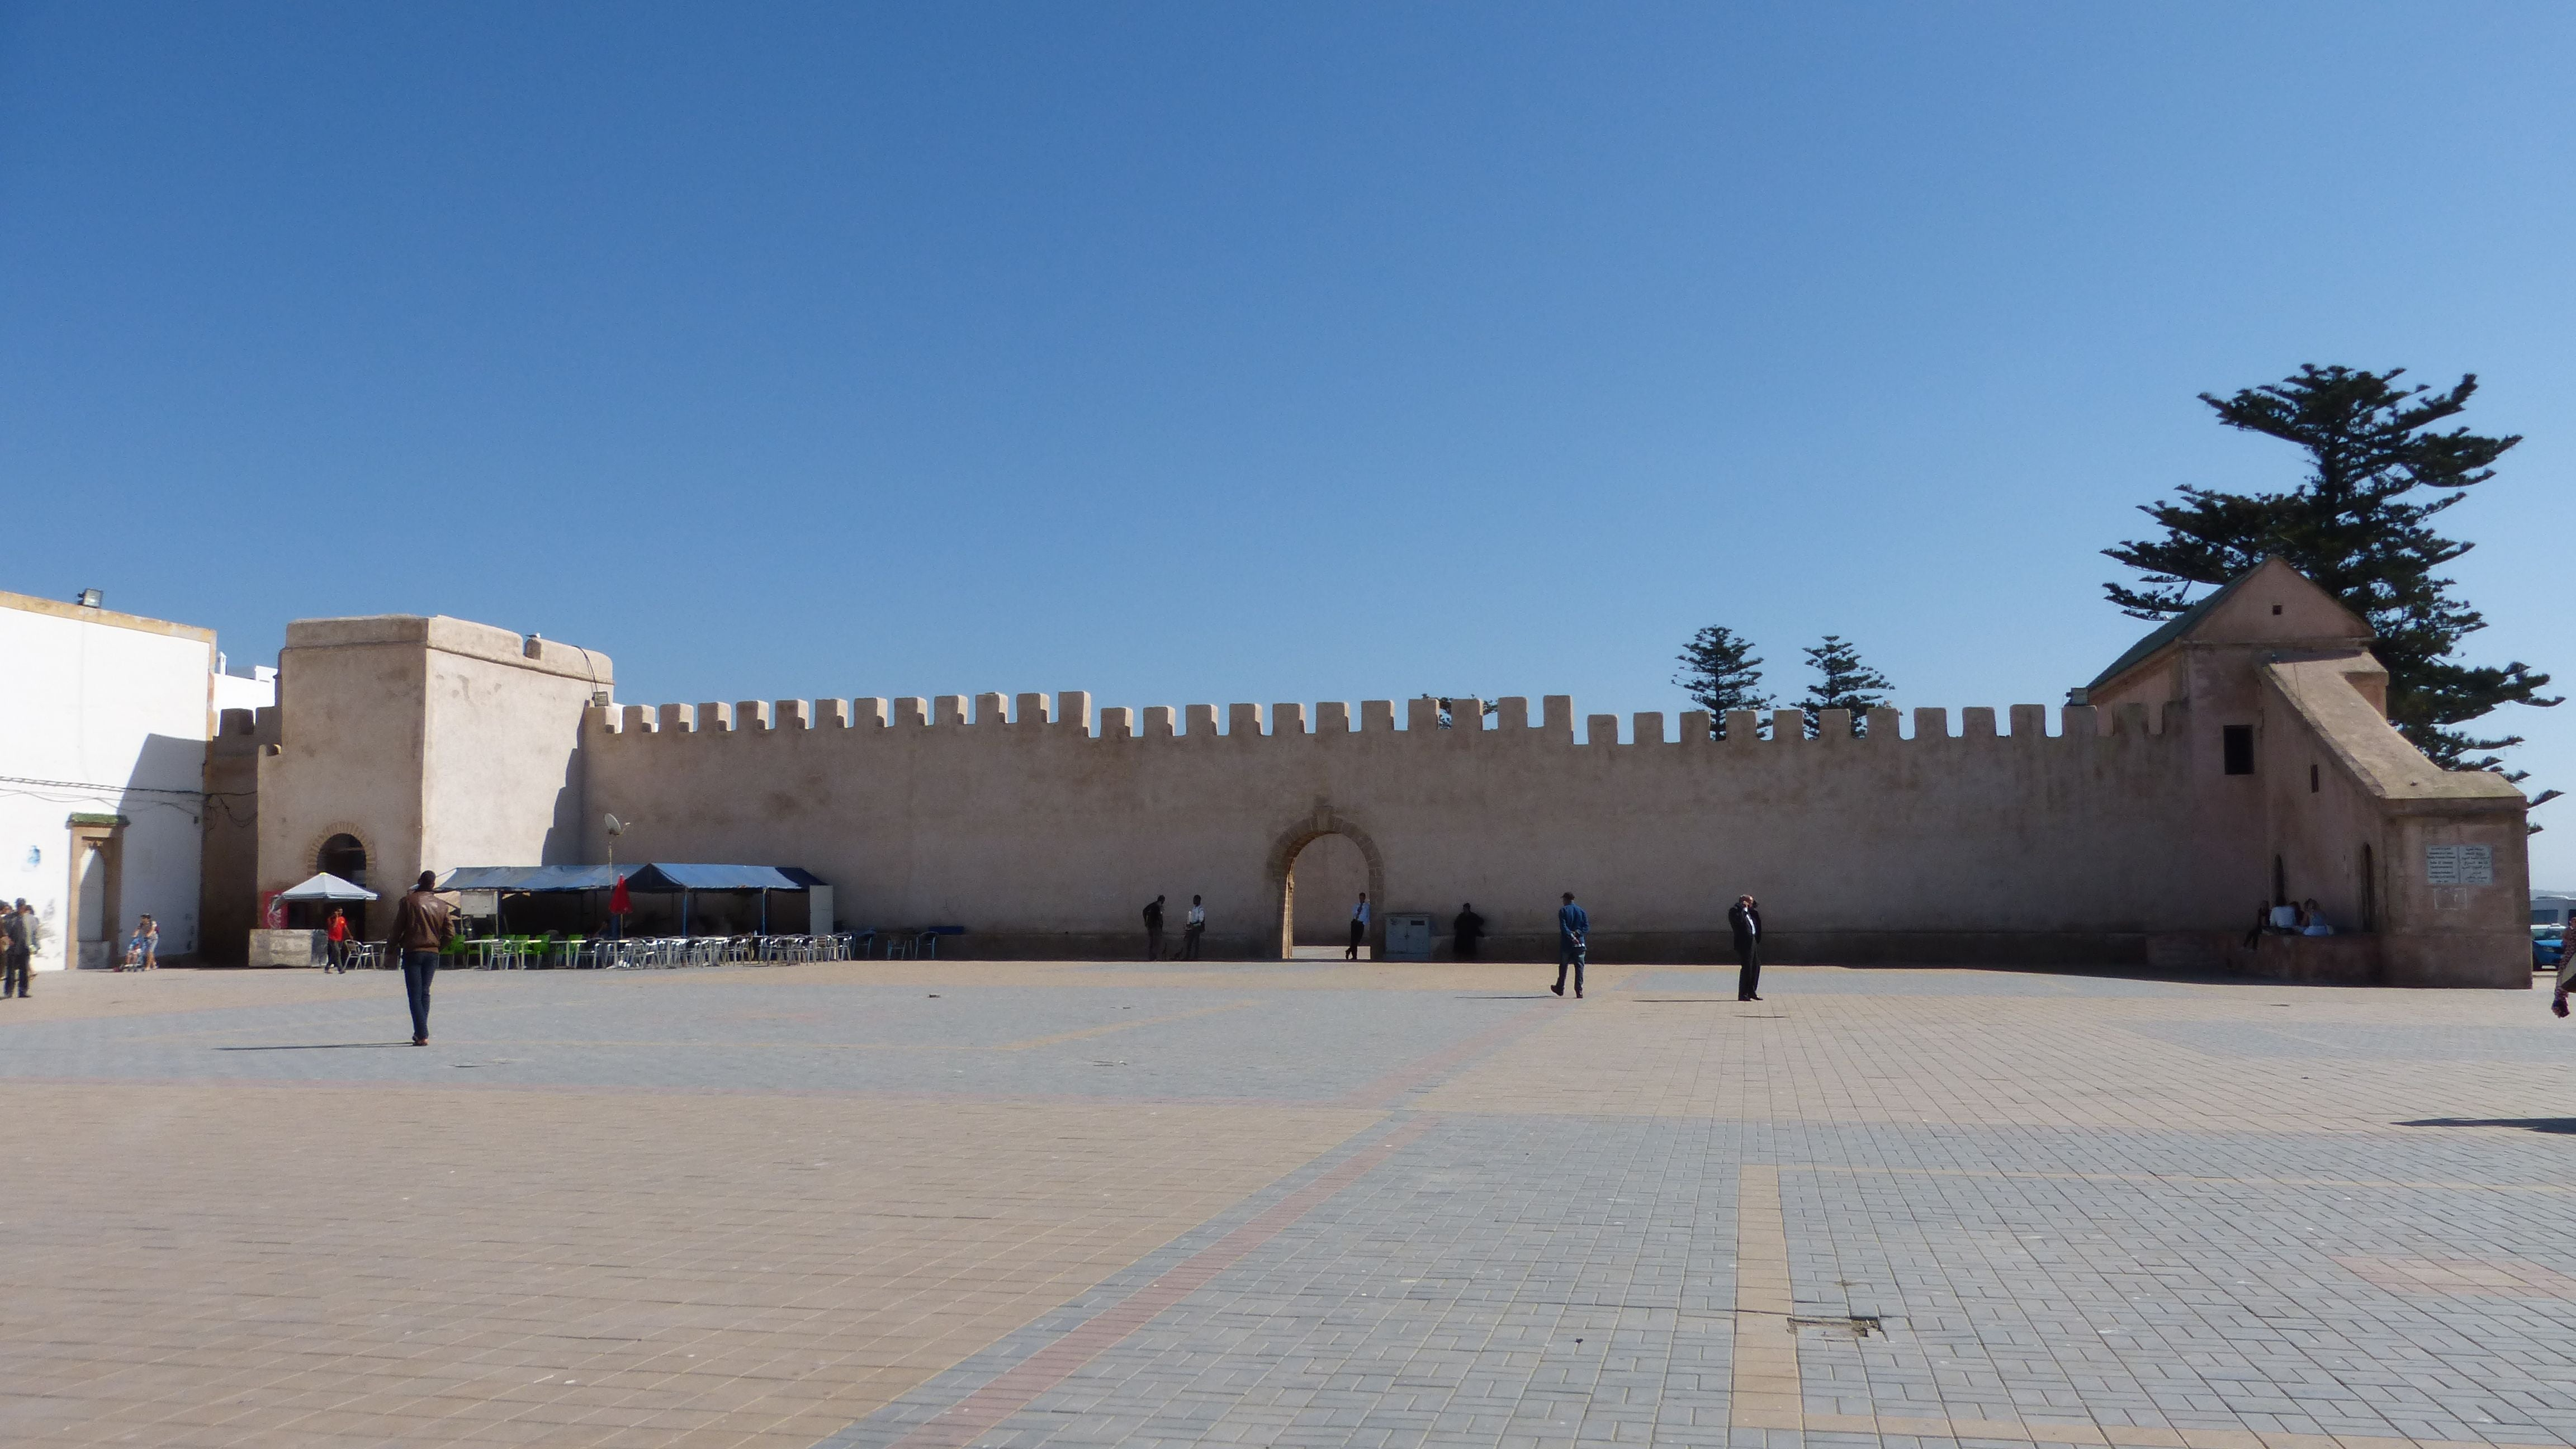 Tourism in Place Moulay Hassan